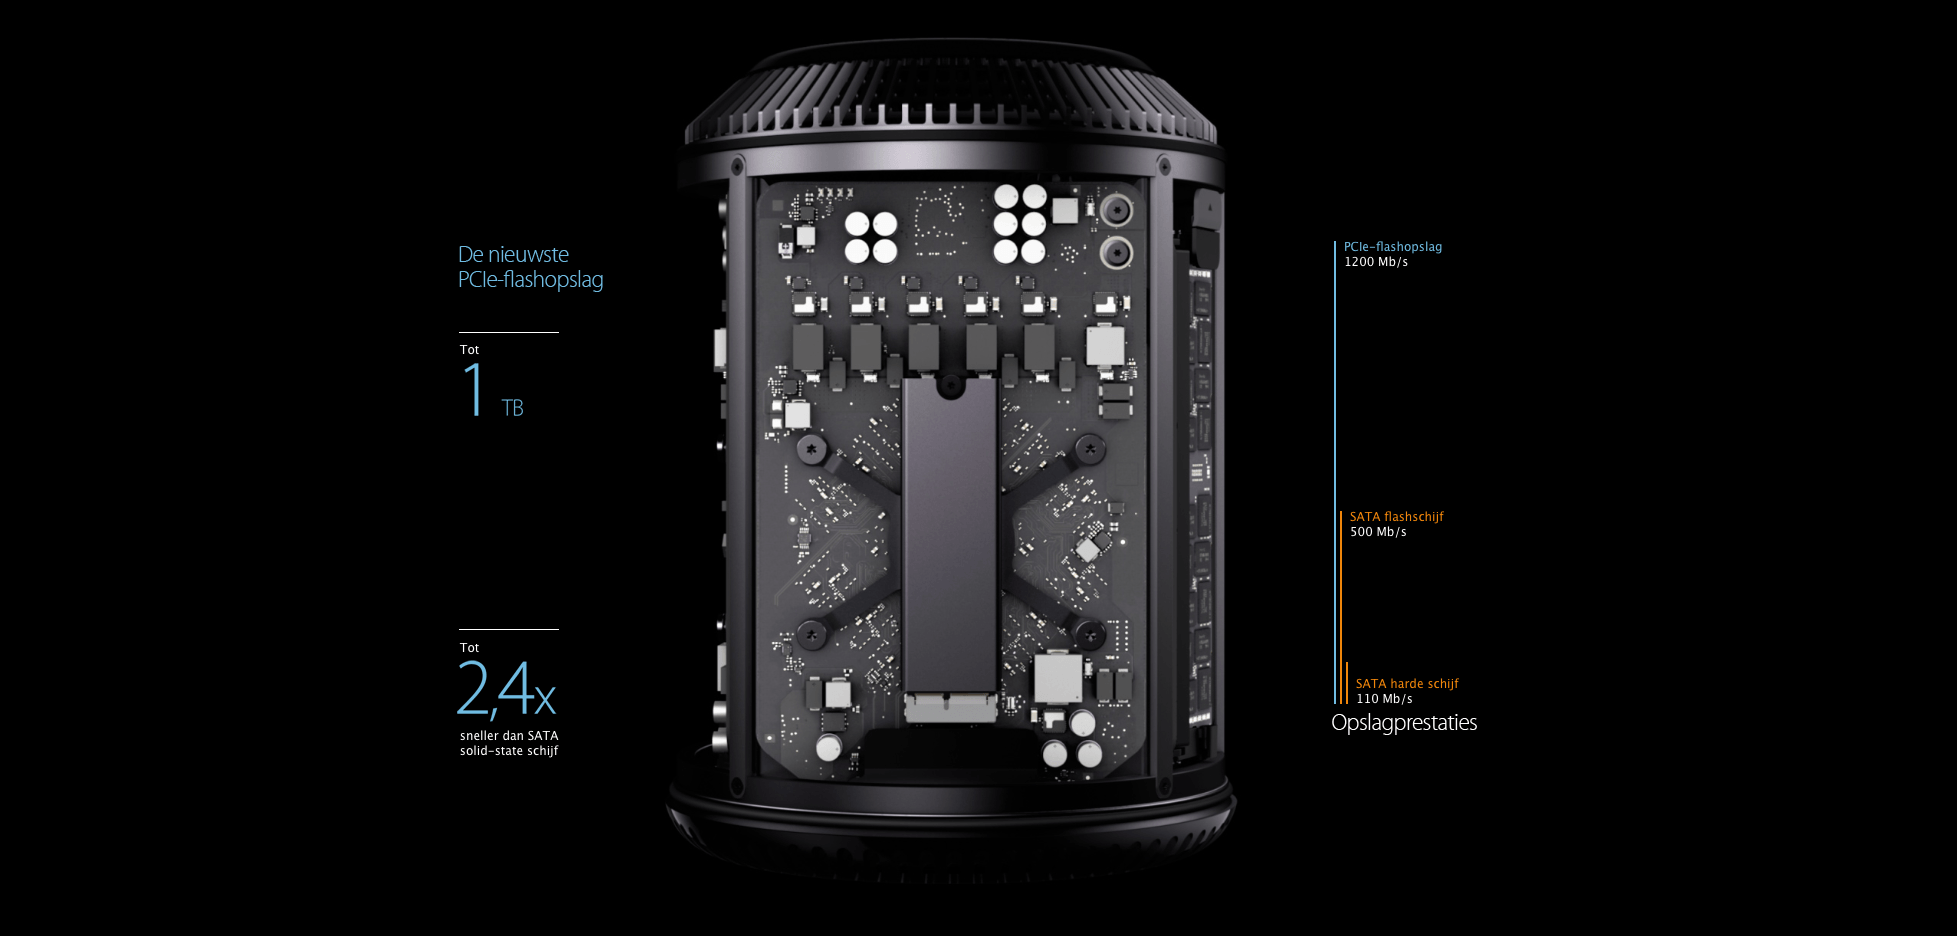 Alles over de Mac Pro | YourMacStore